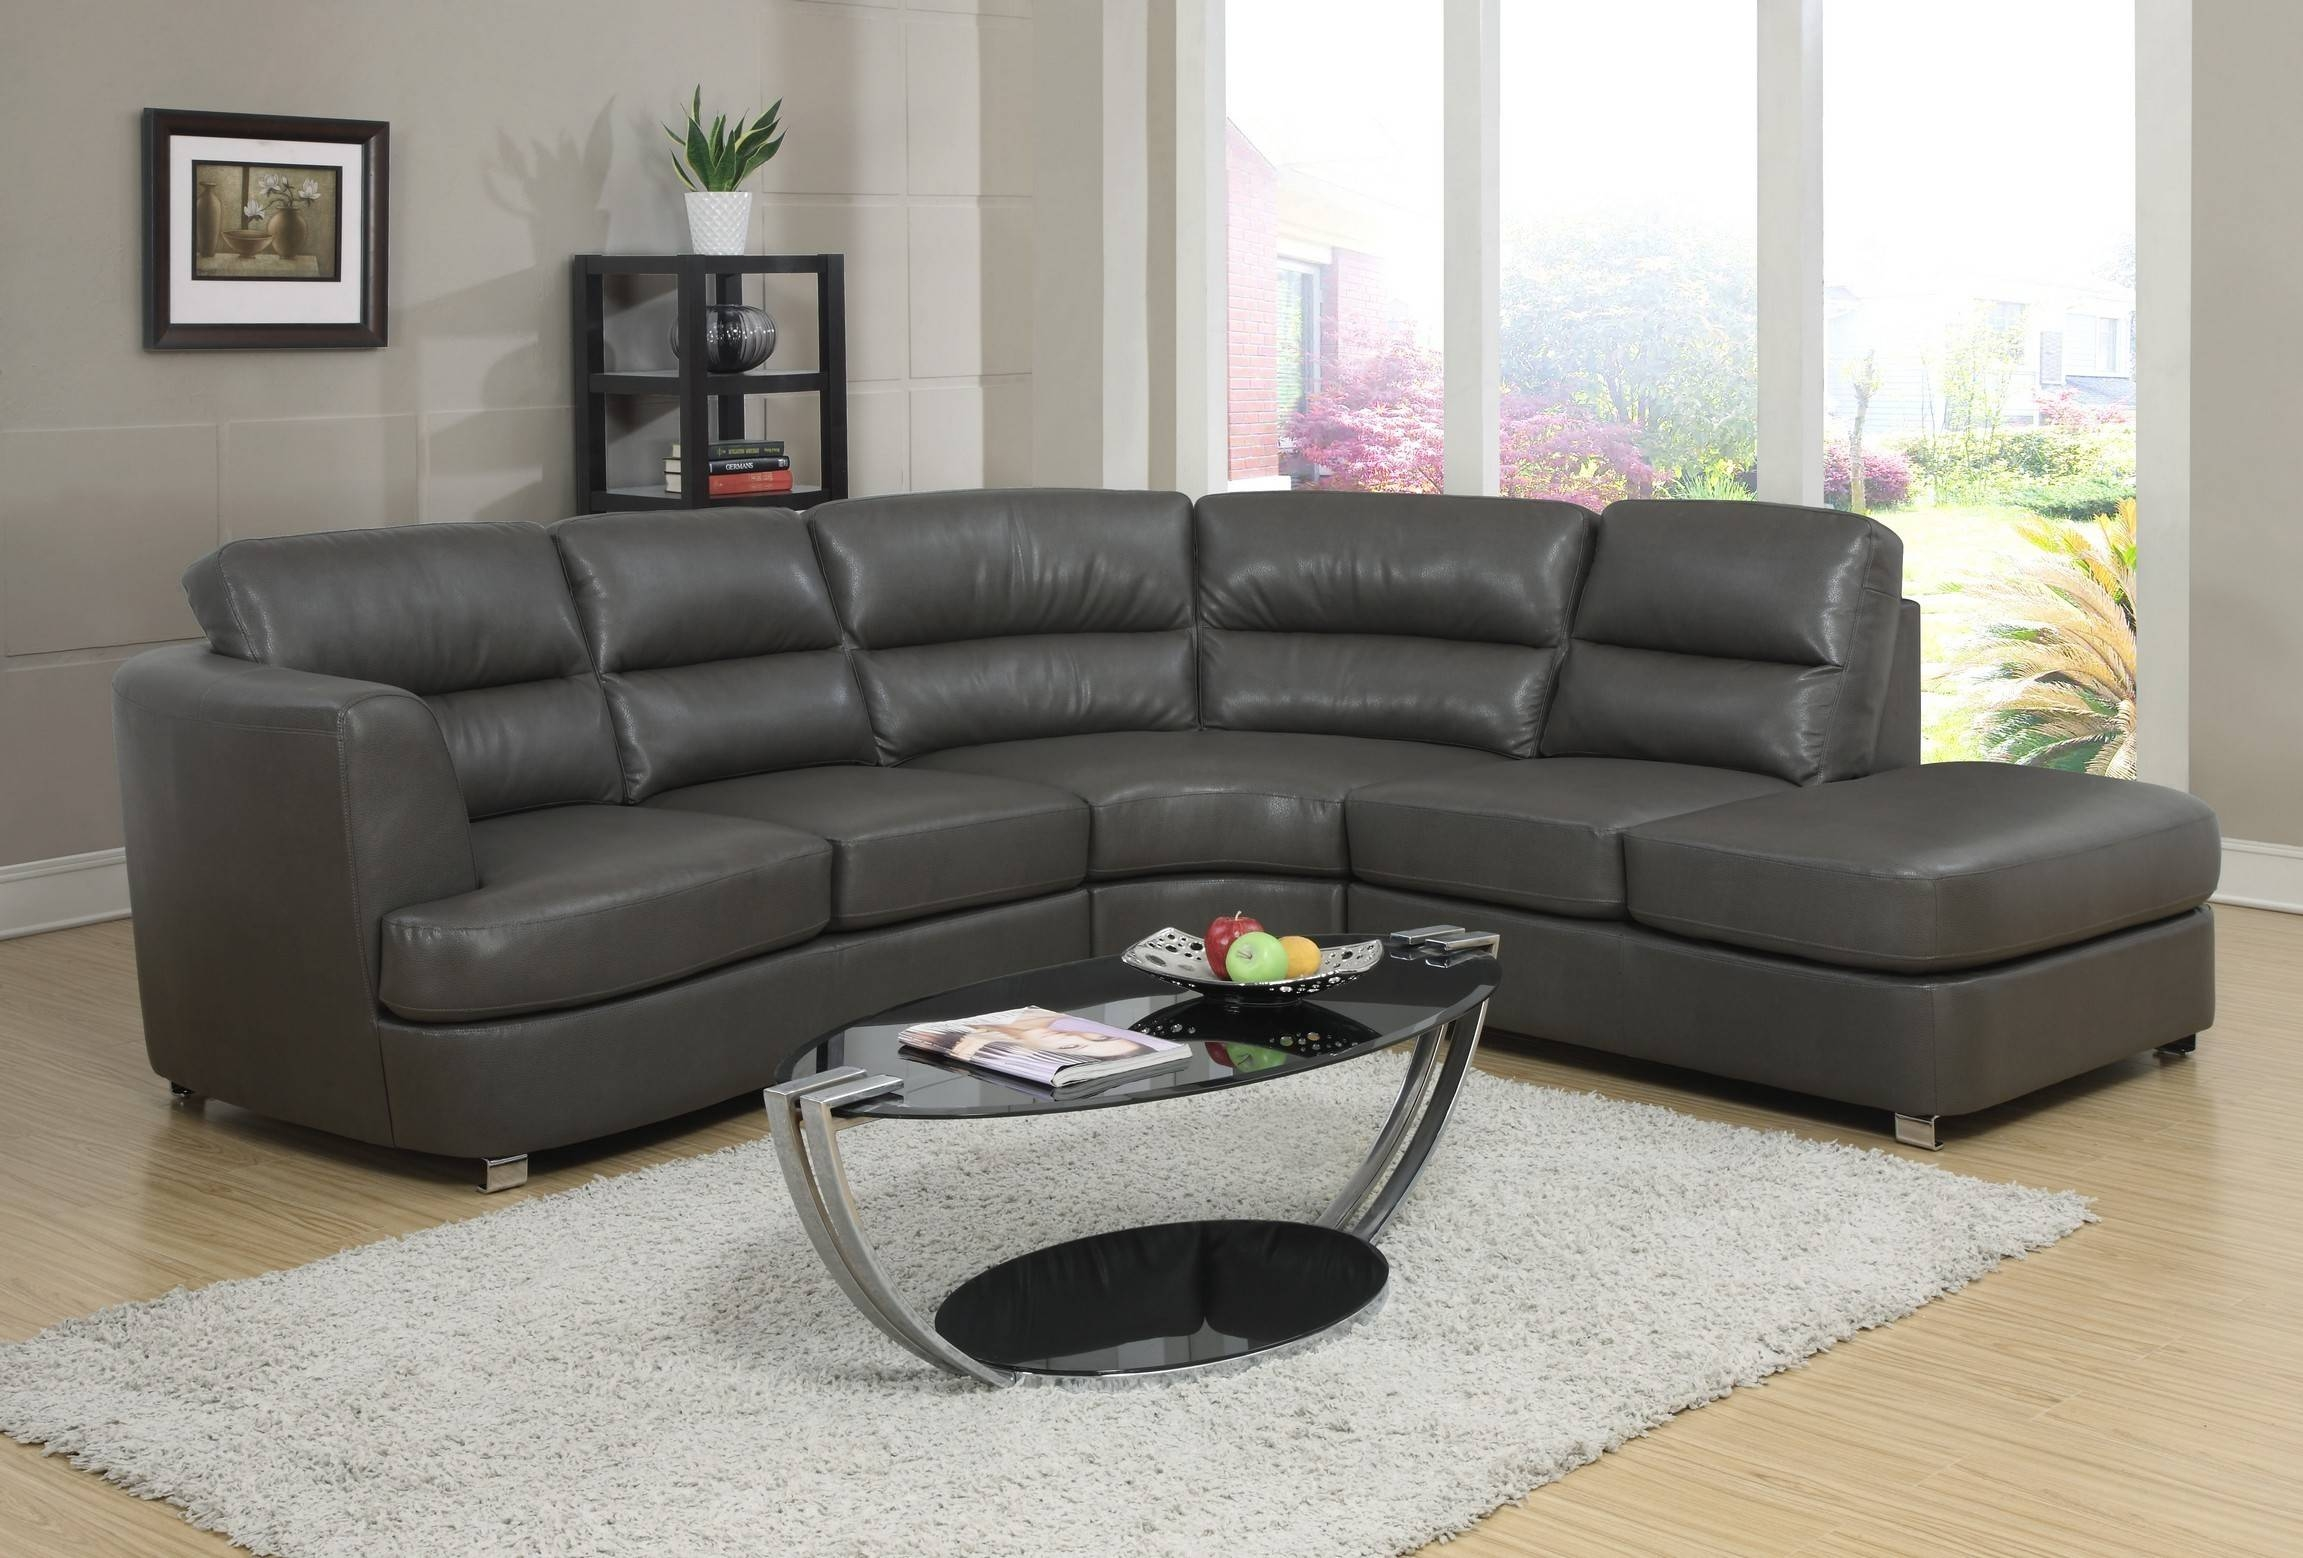 Sofas Center : Grey Living Room Sets Charcoal Sofa Set Gray With Regarding Charcoal  Grey Sofas Part 57